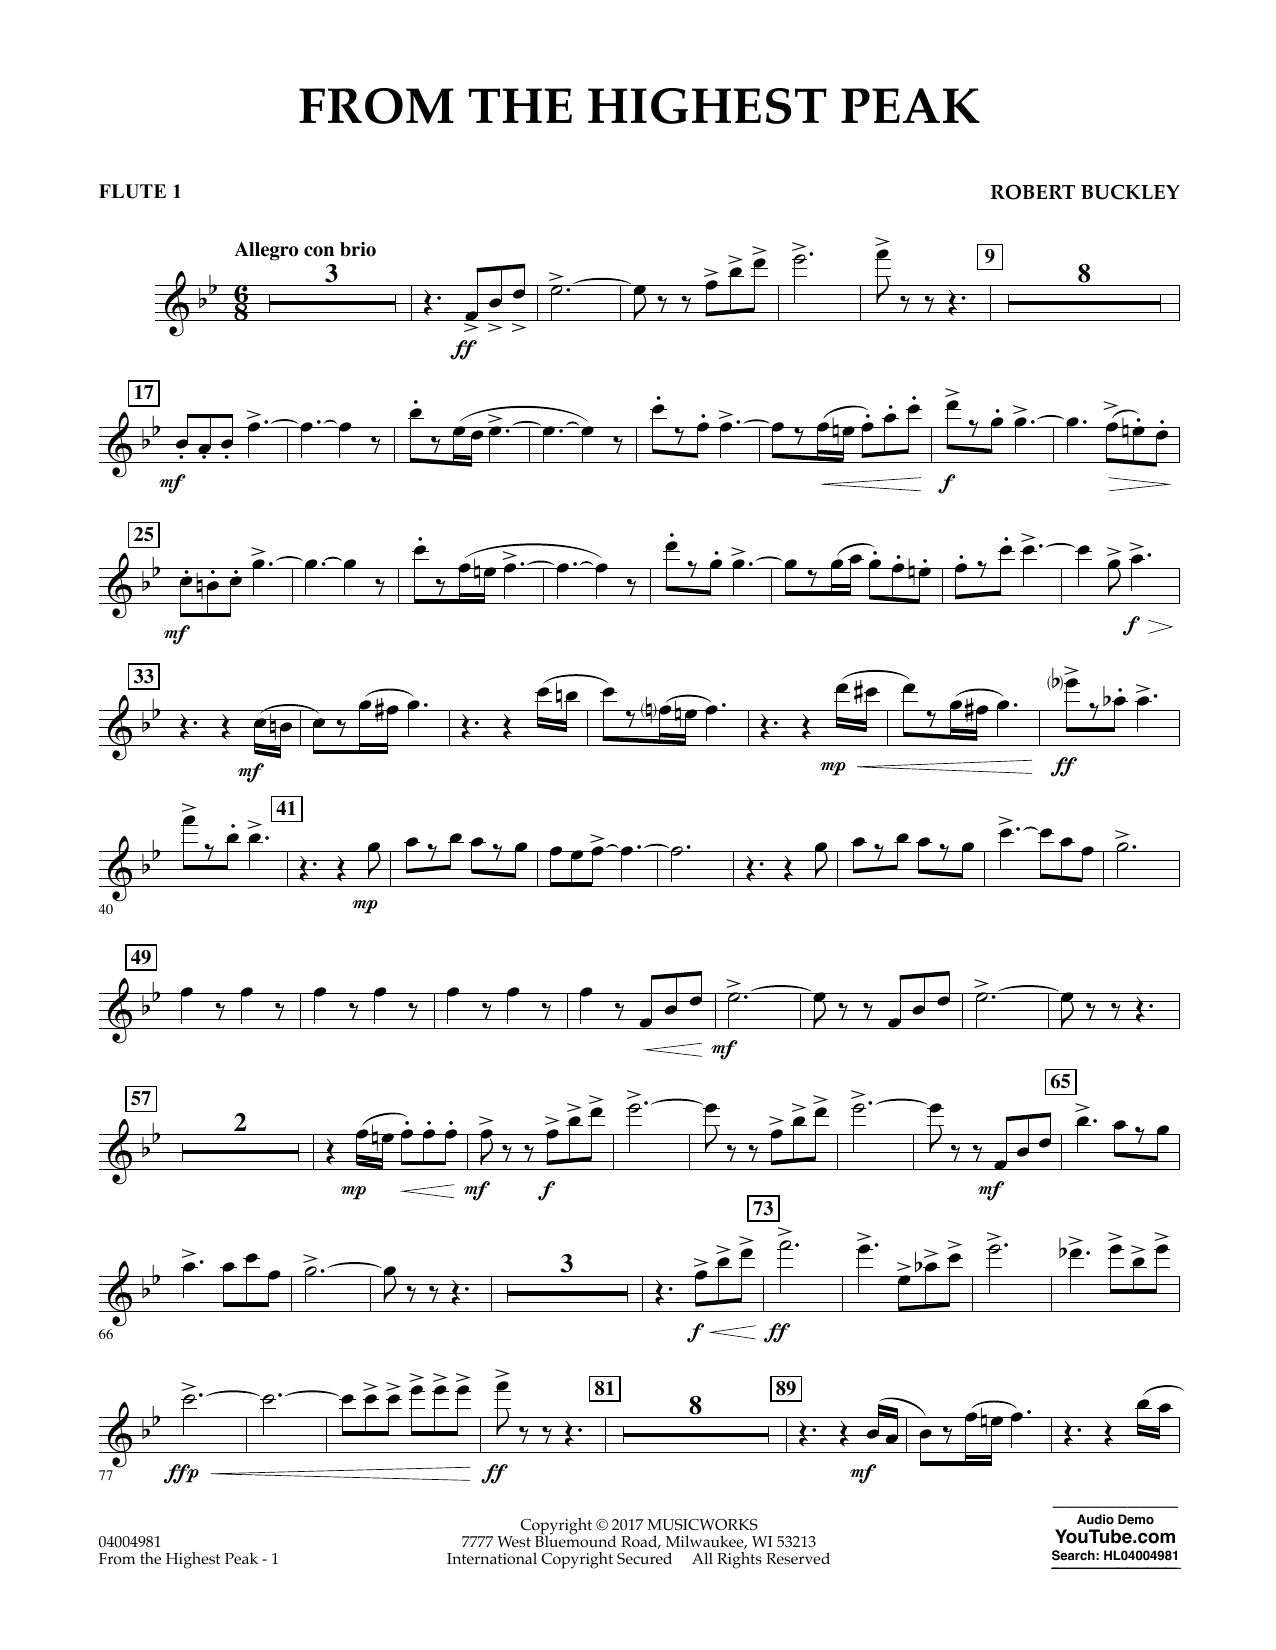 Robert Buckley From the Highest Peak - Flute 1 sheet music notes and chords. Download Printable PDF.